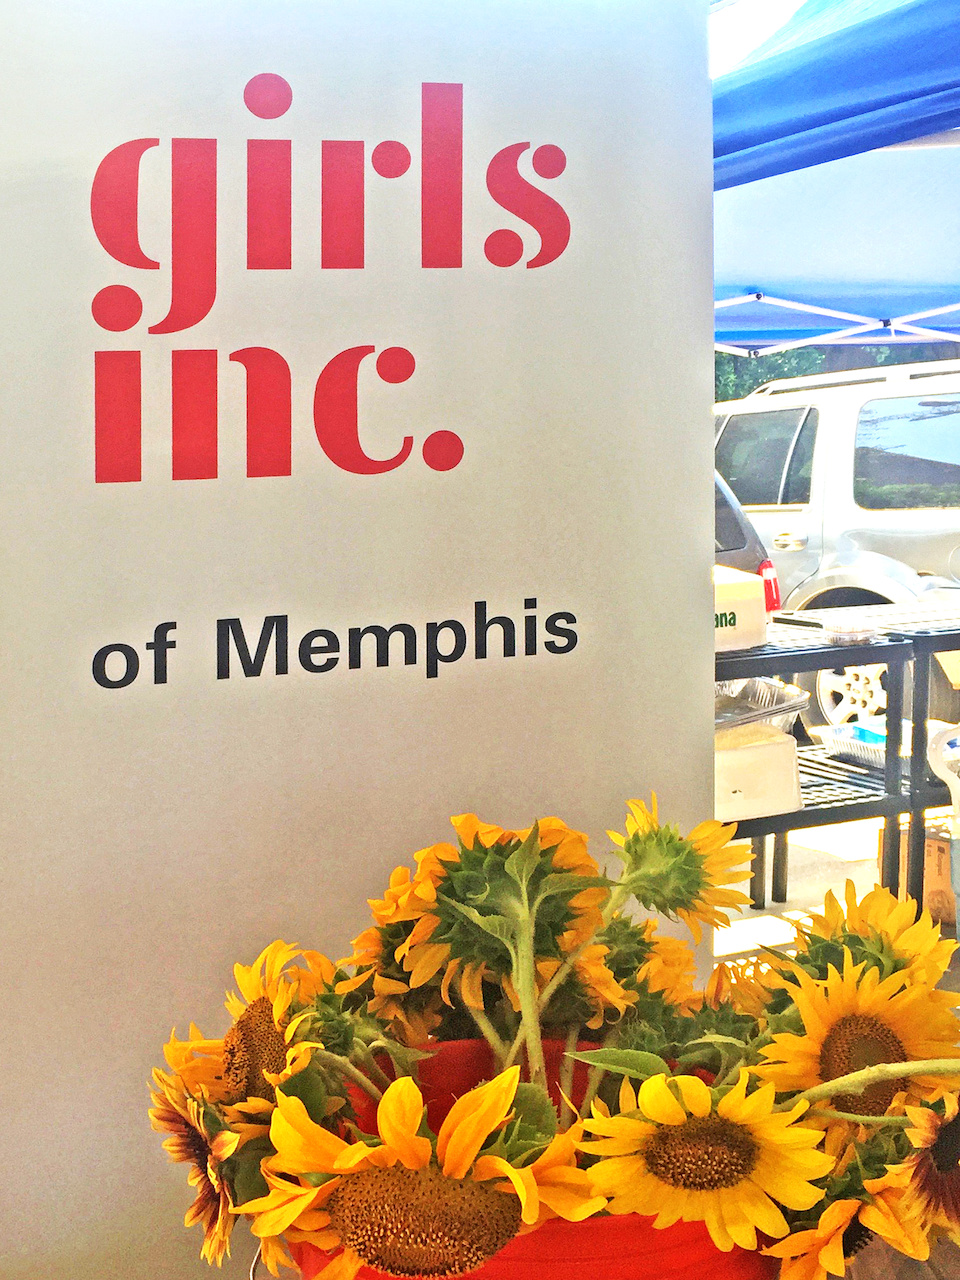 The Girls, Inc. booth sets up every Saturday morning to sell their homegrown products, including honey, $5.50.